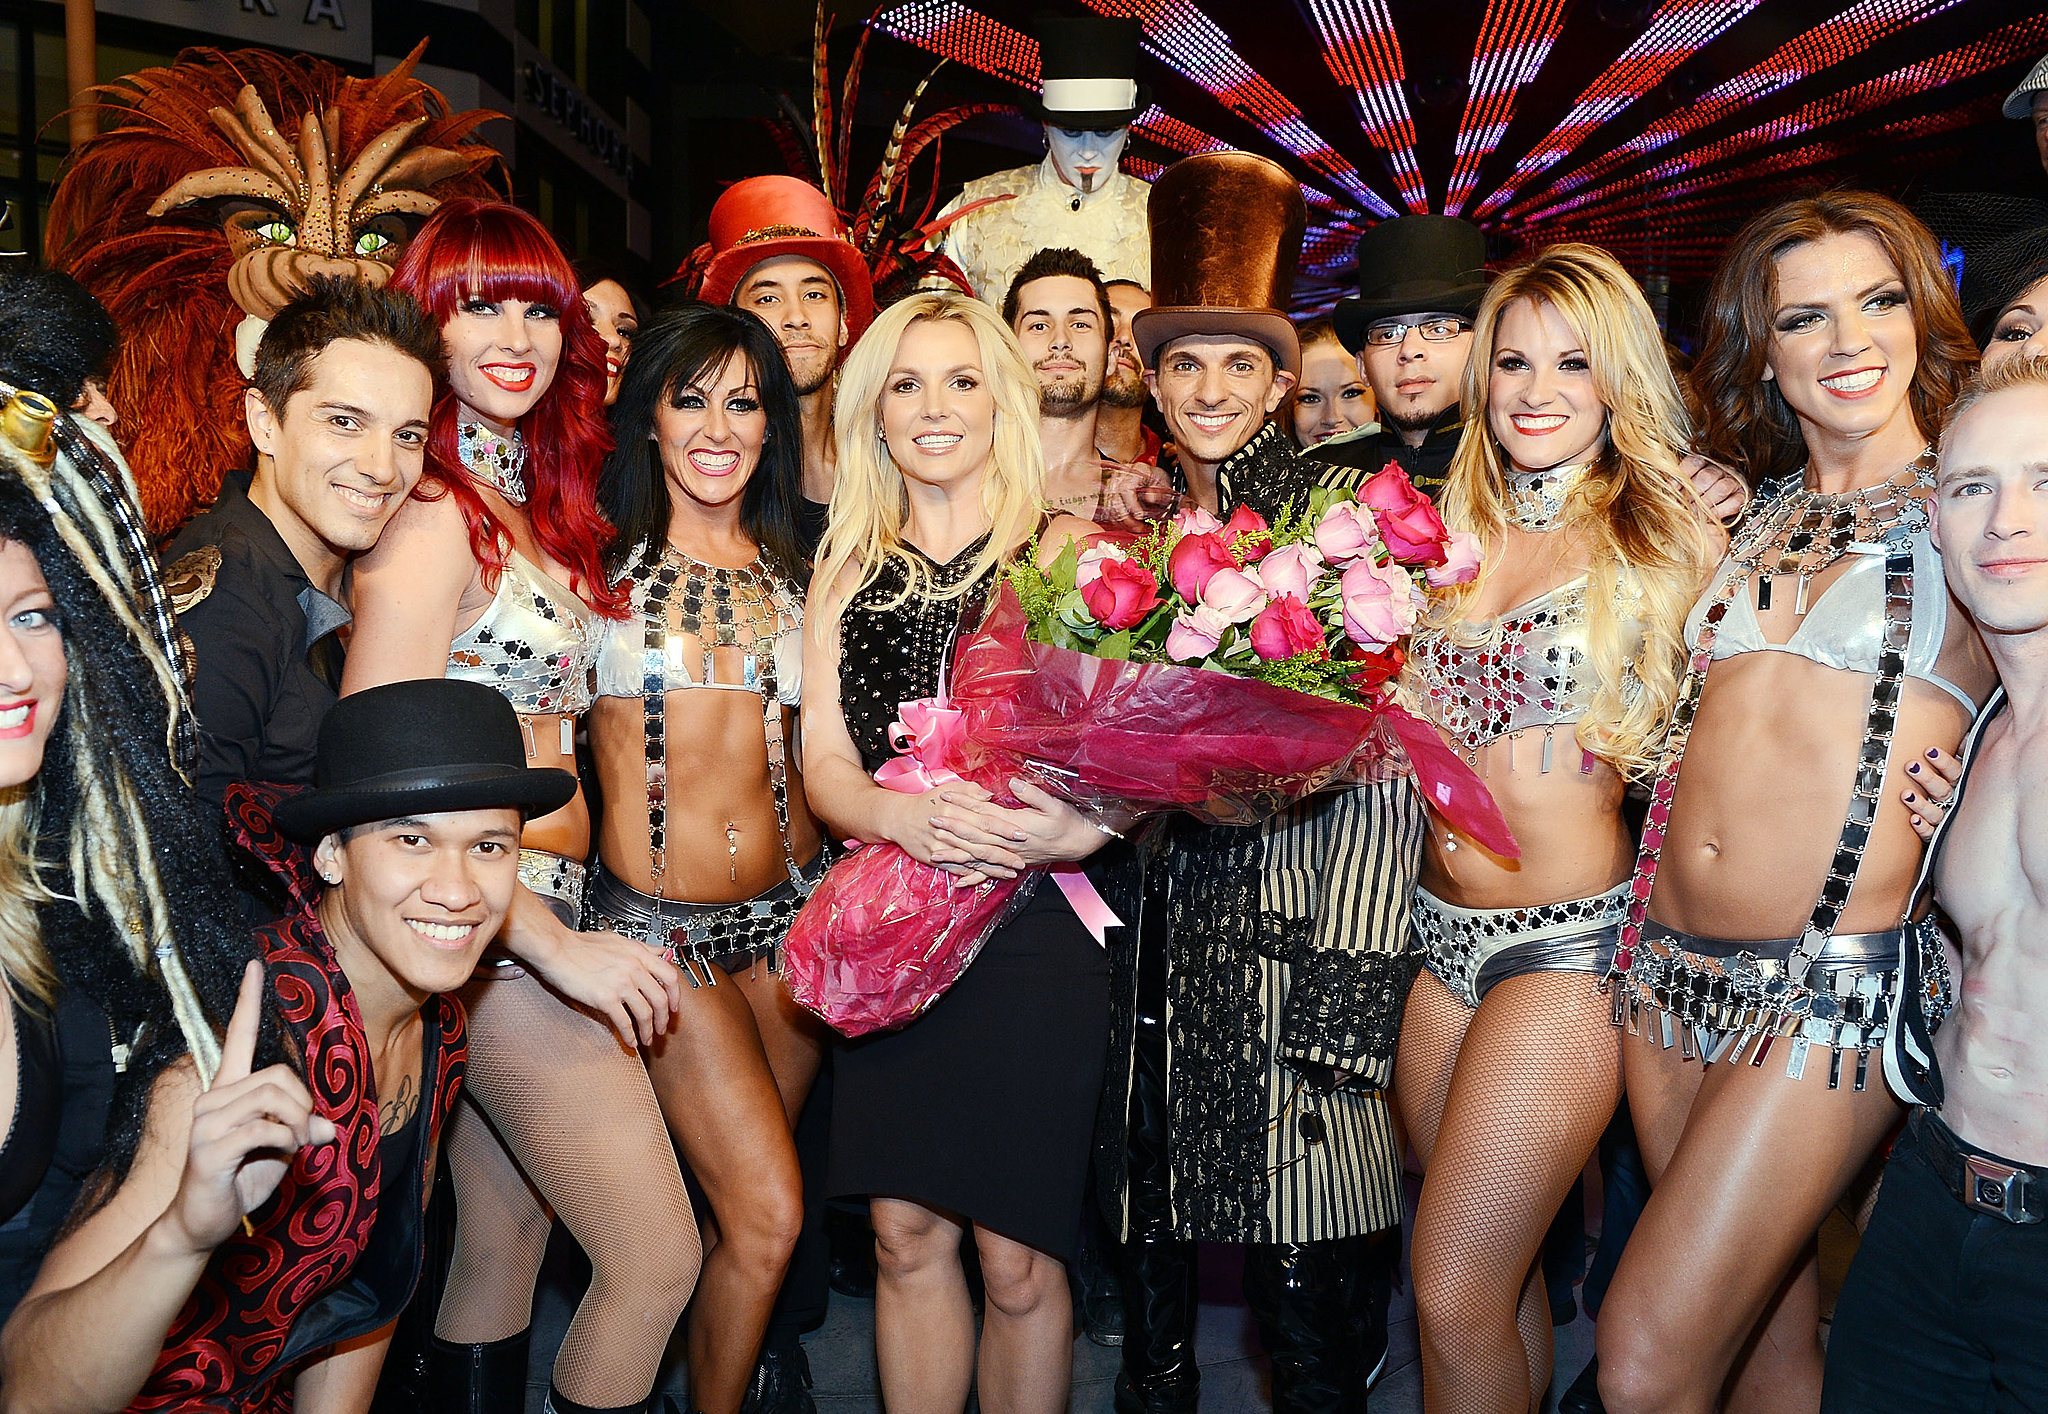 Britney Spears celebrated her official arrival at Planet Hollywood Resort &